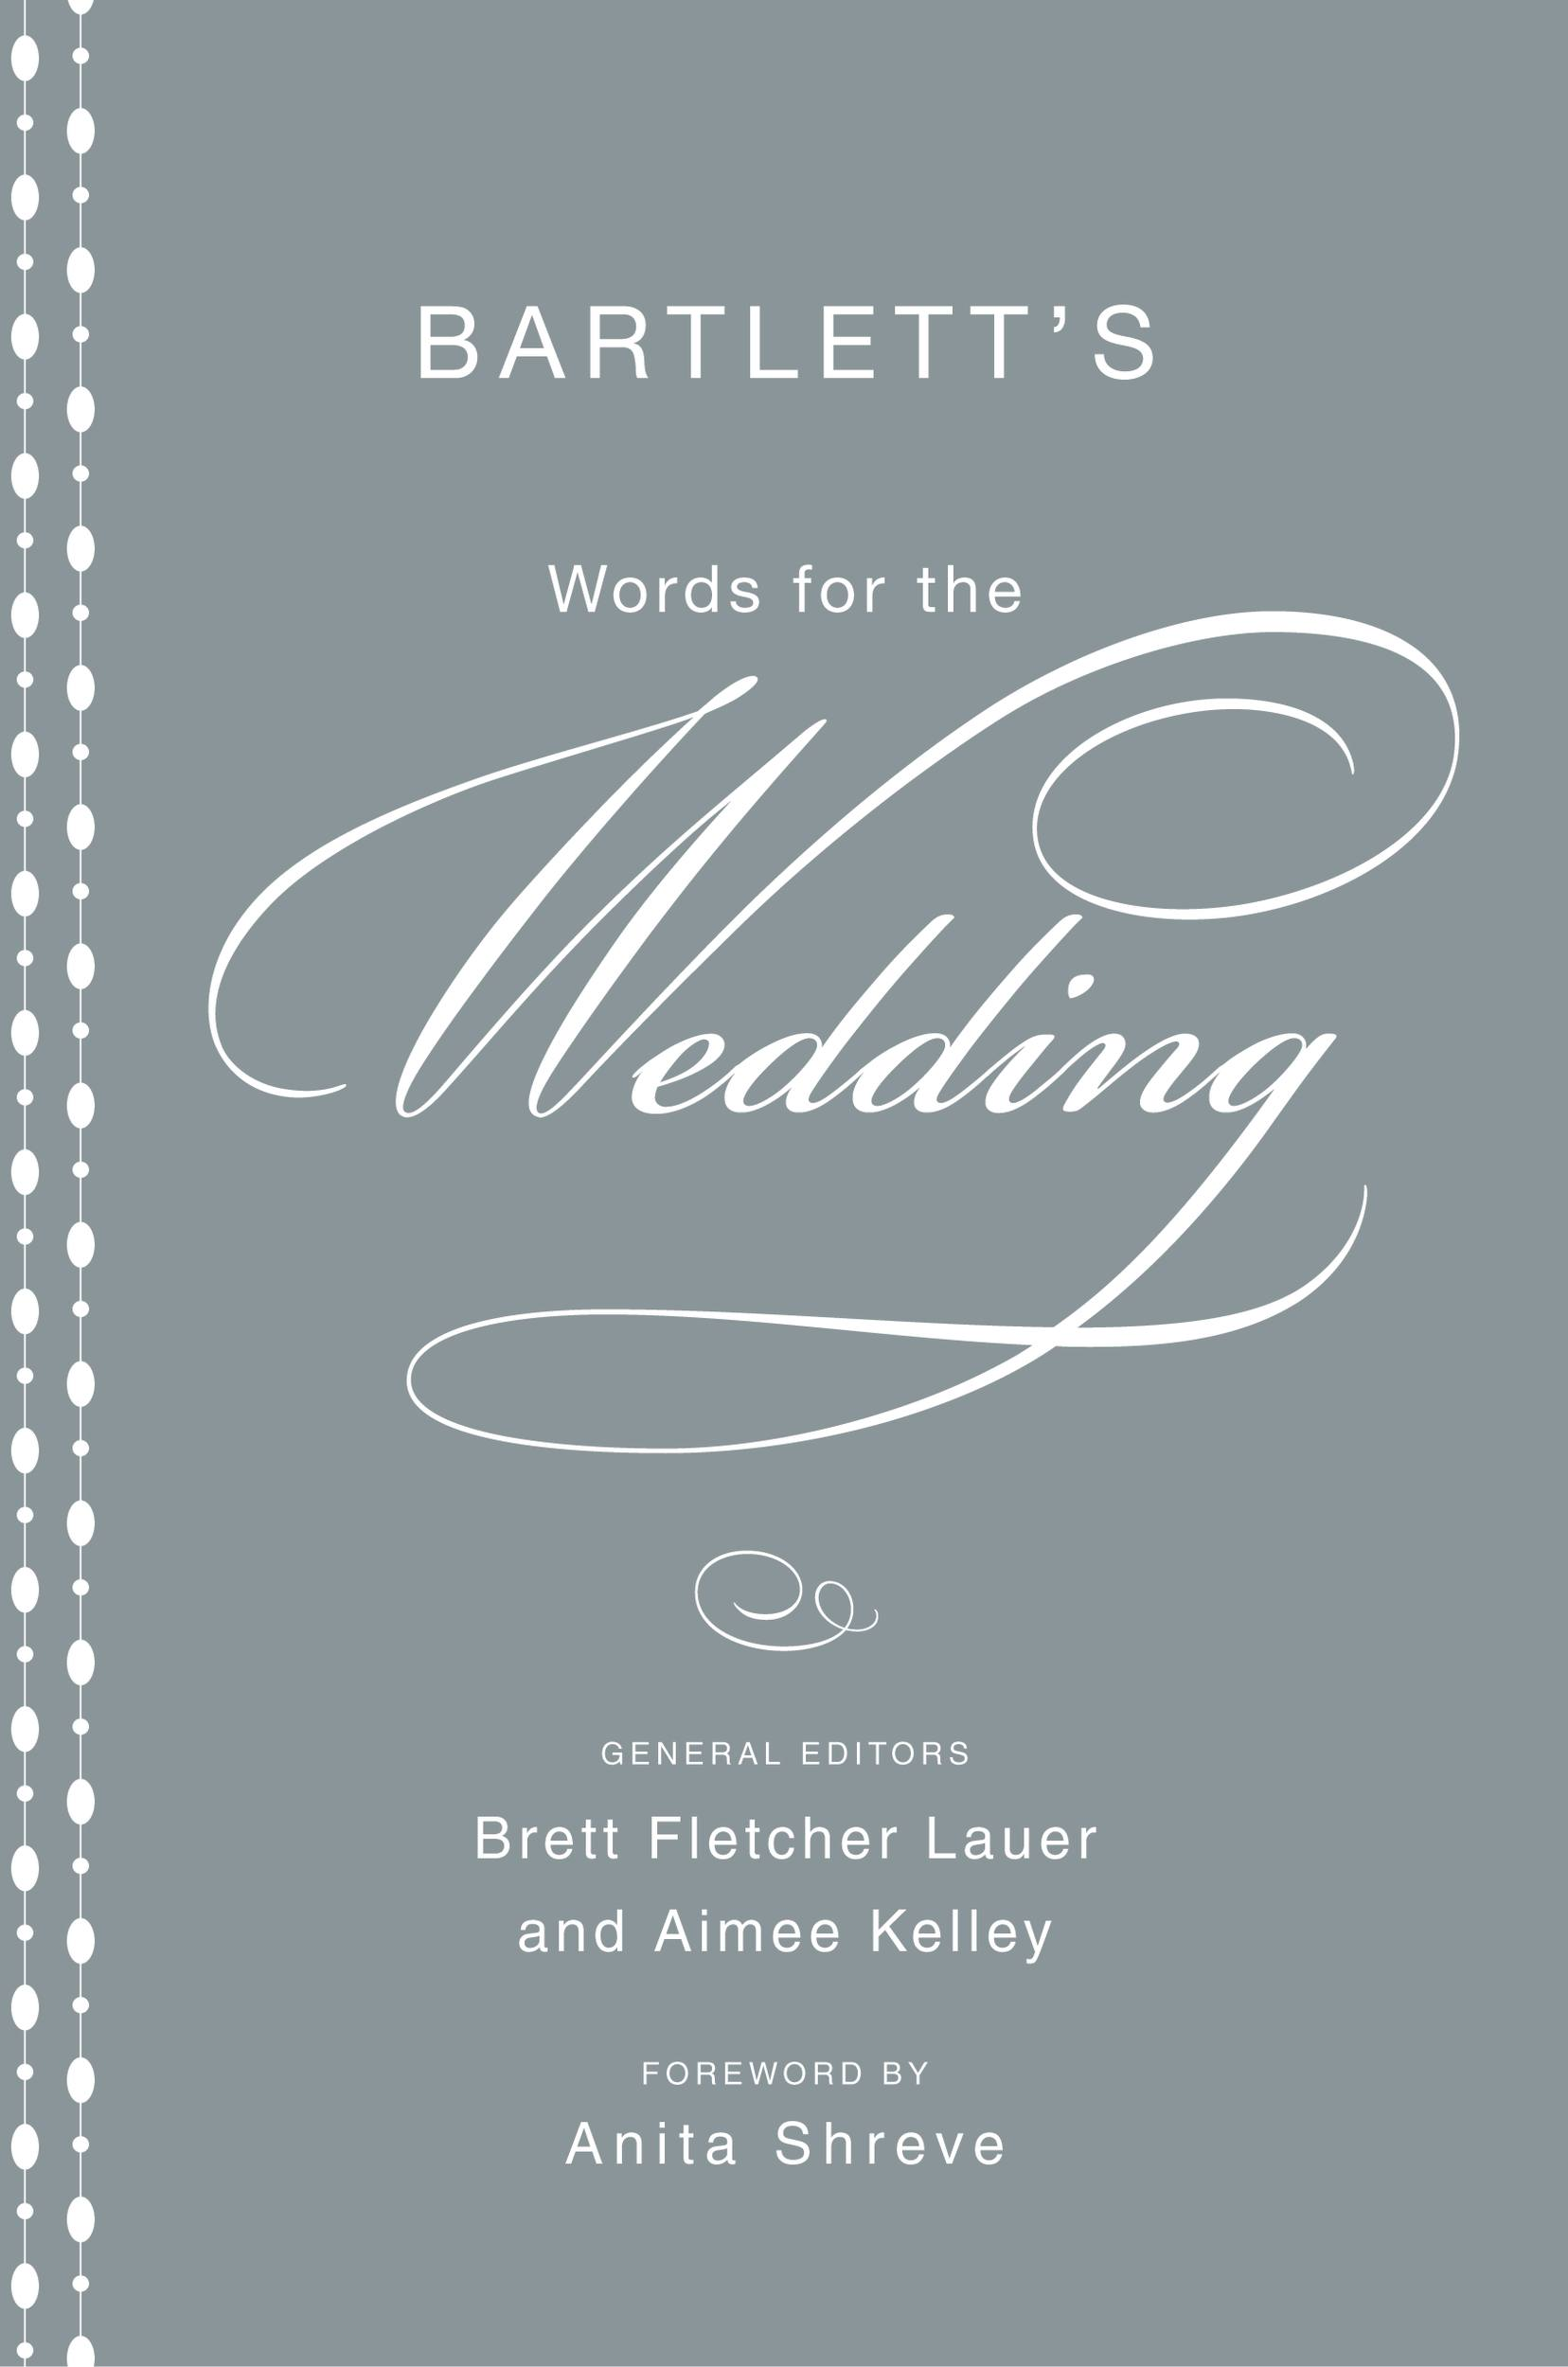 Bartlett's Words for the Wedding By: Brett Fletcher Lauer